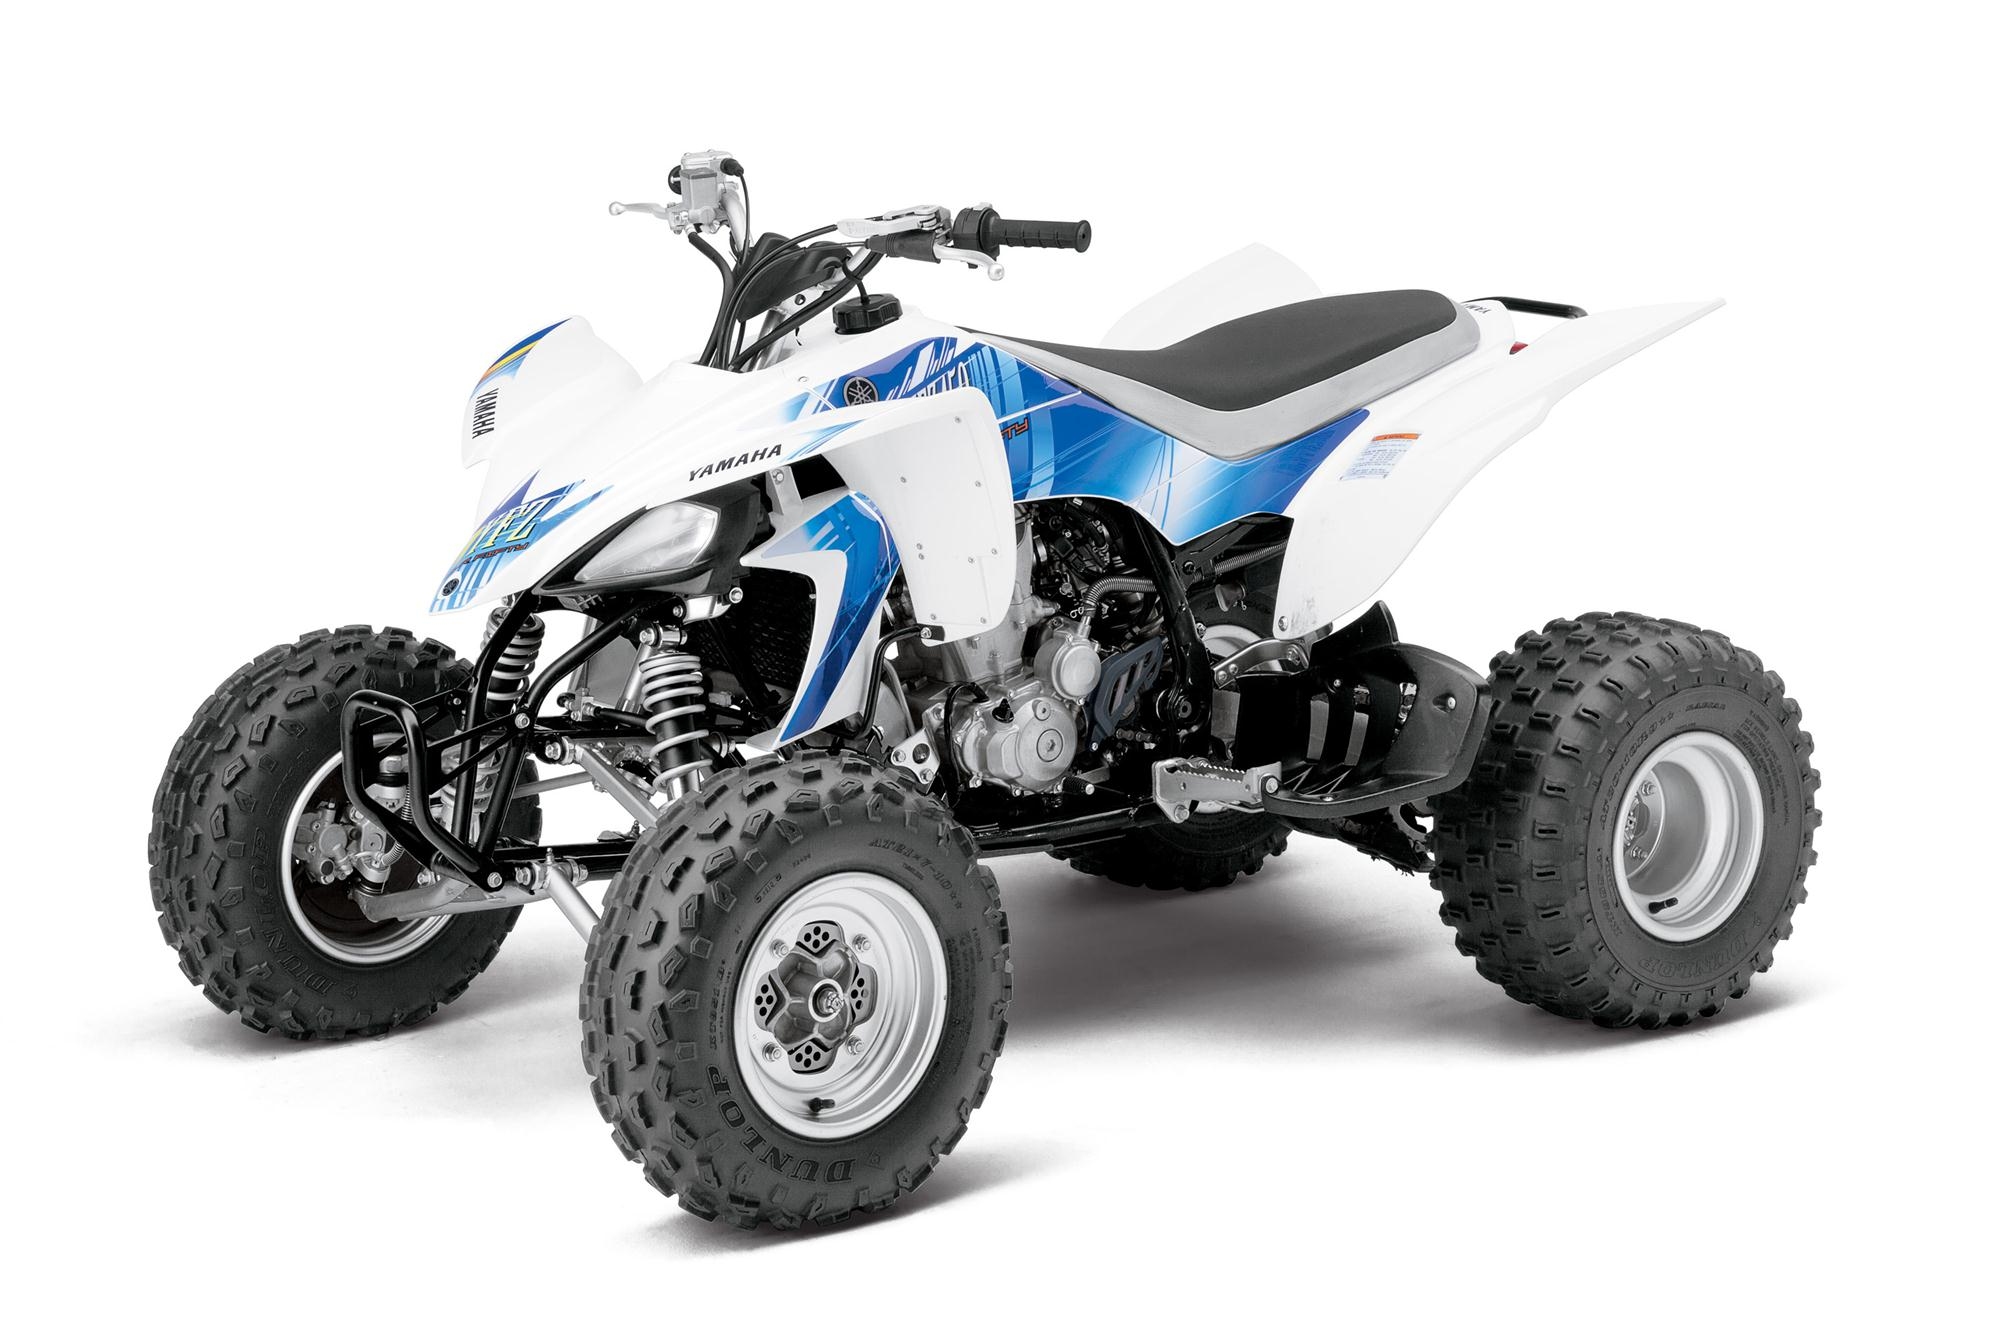 Yamaha yfz450 photo - 8